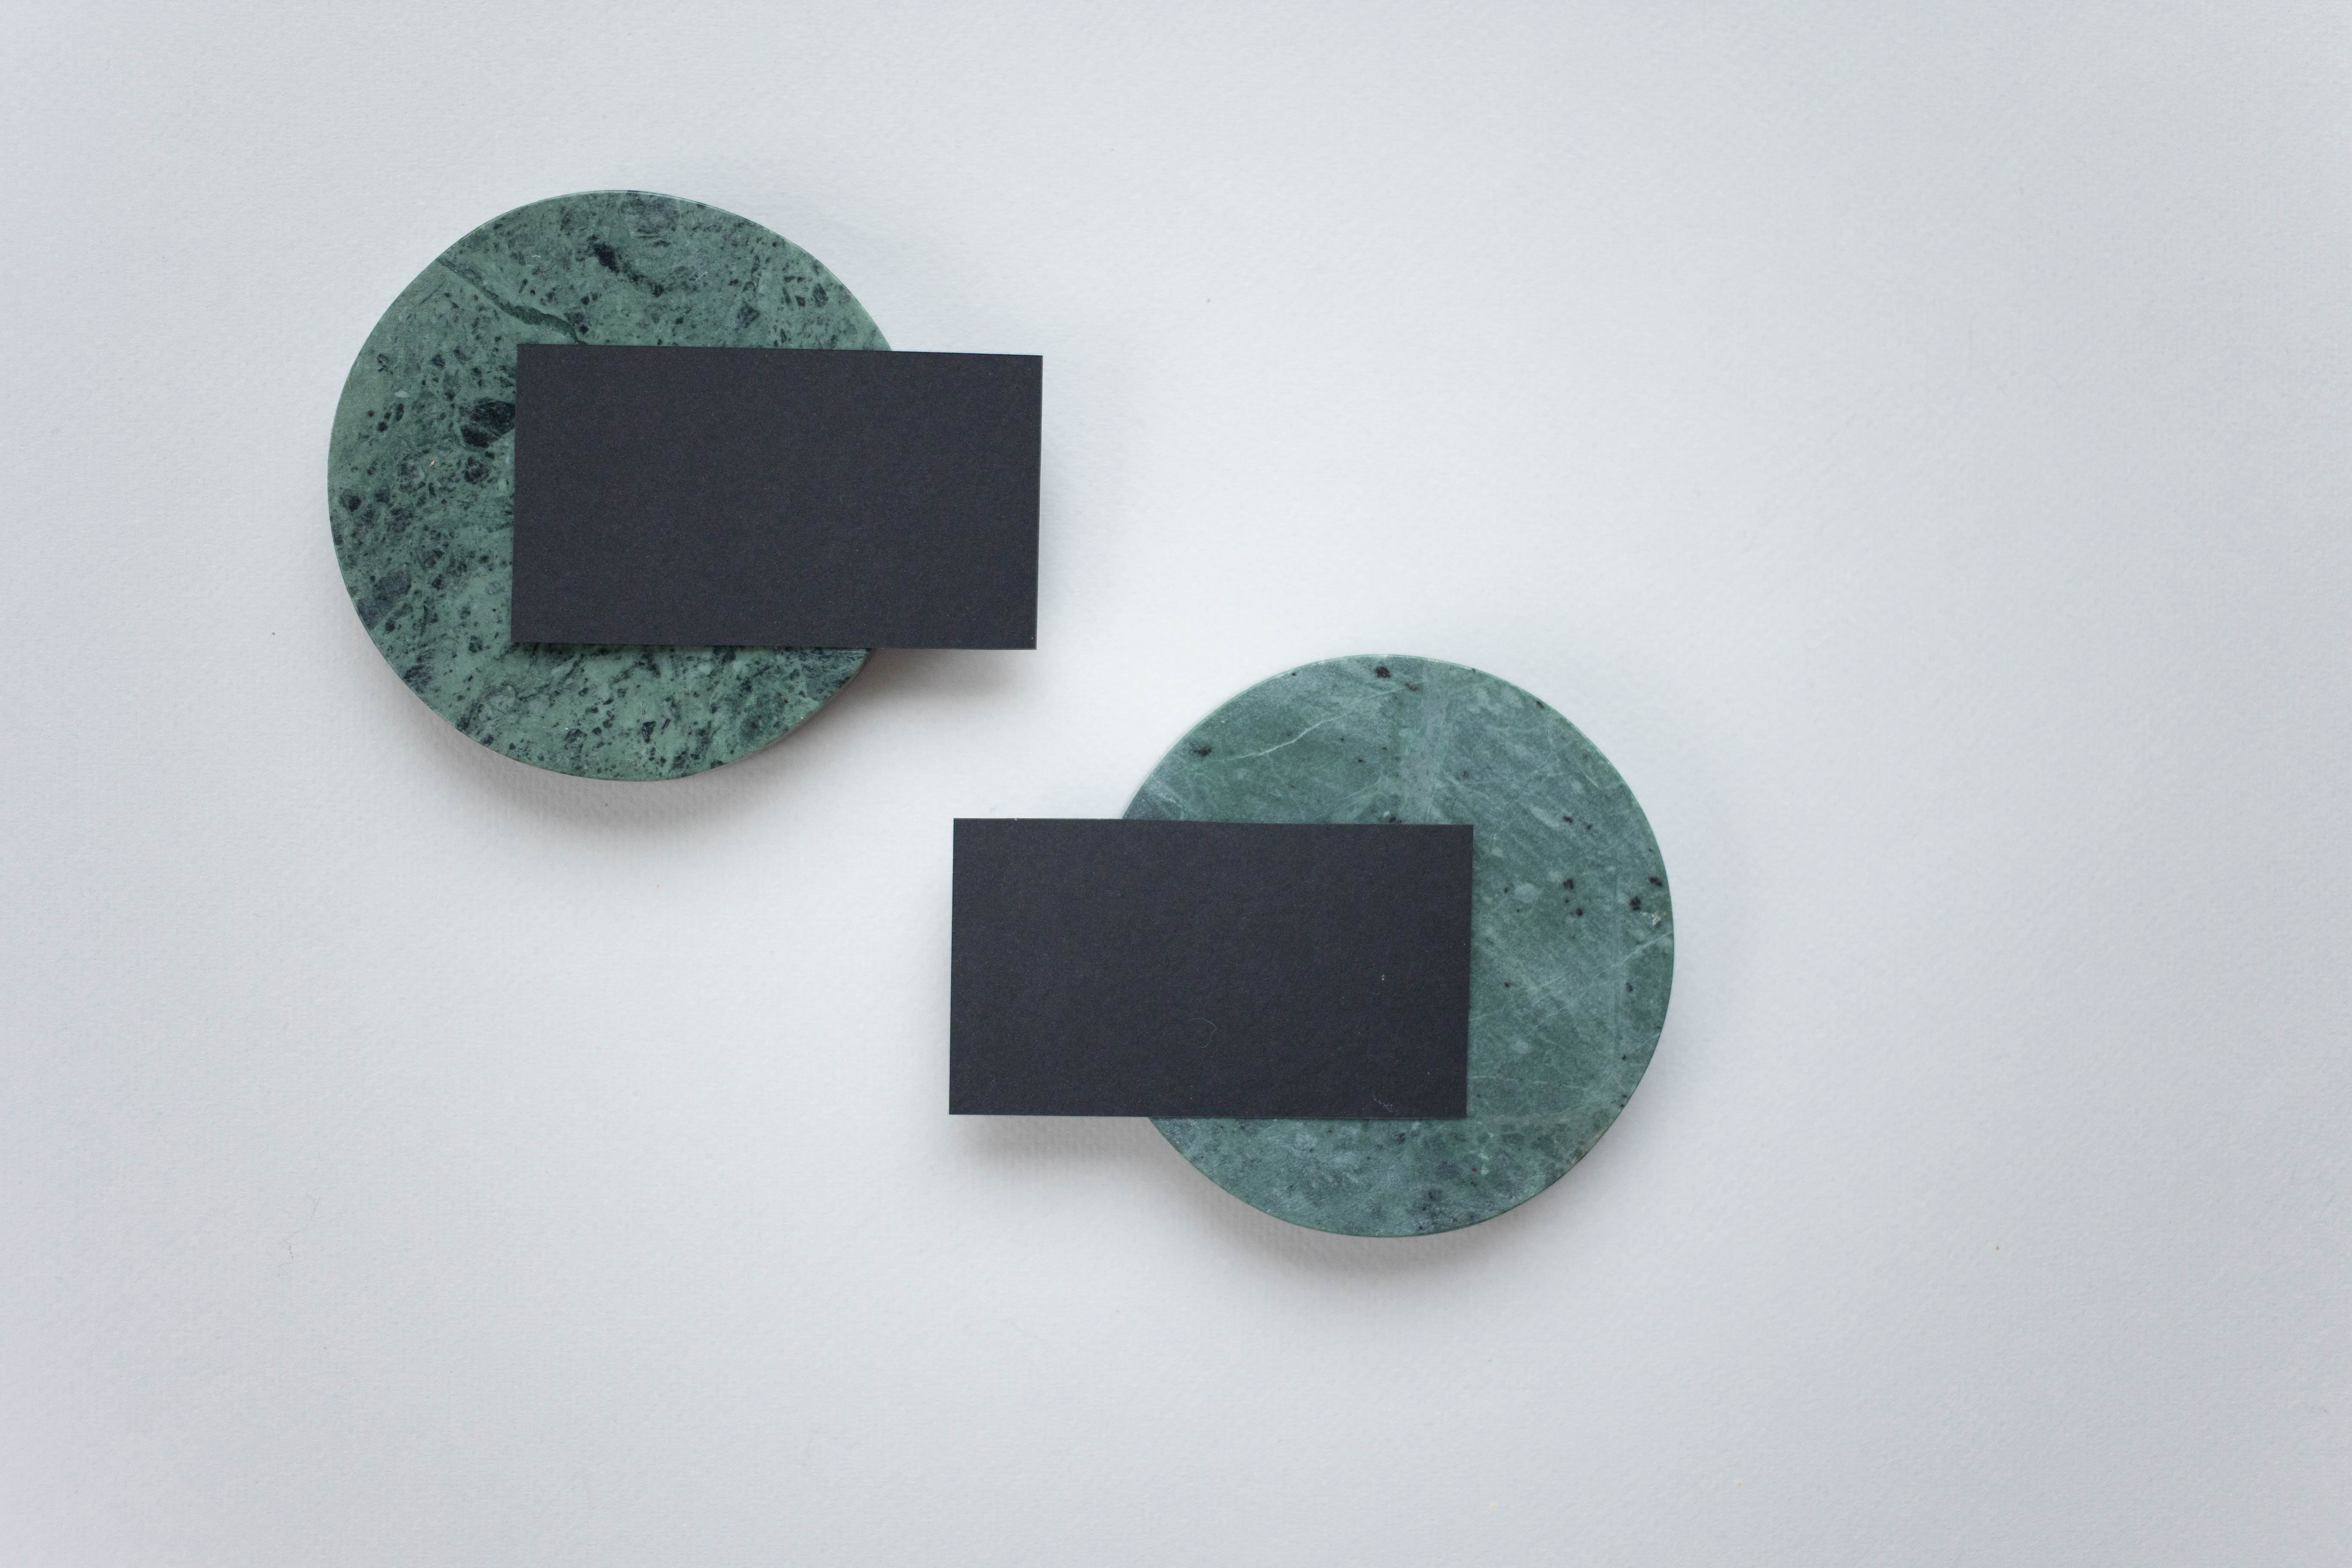 blank business cards on coasters